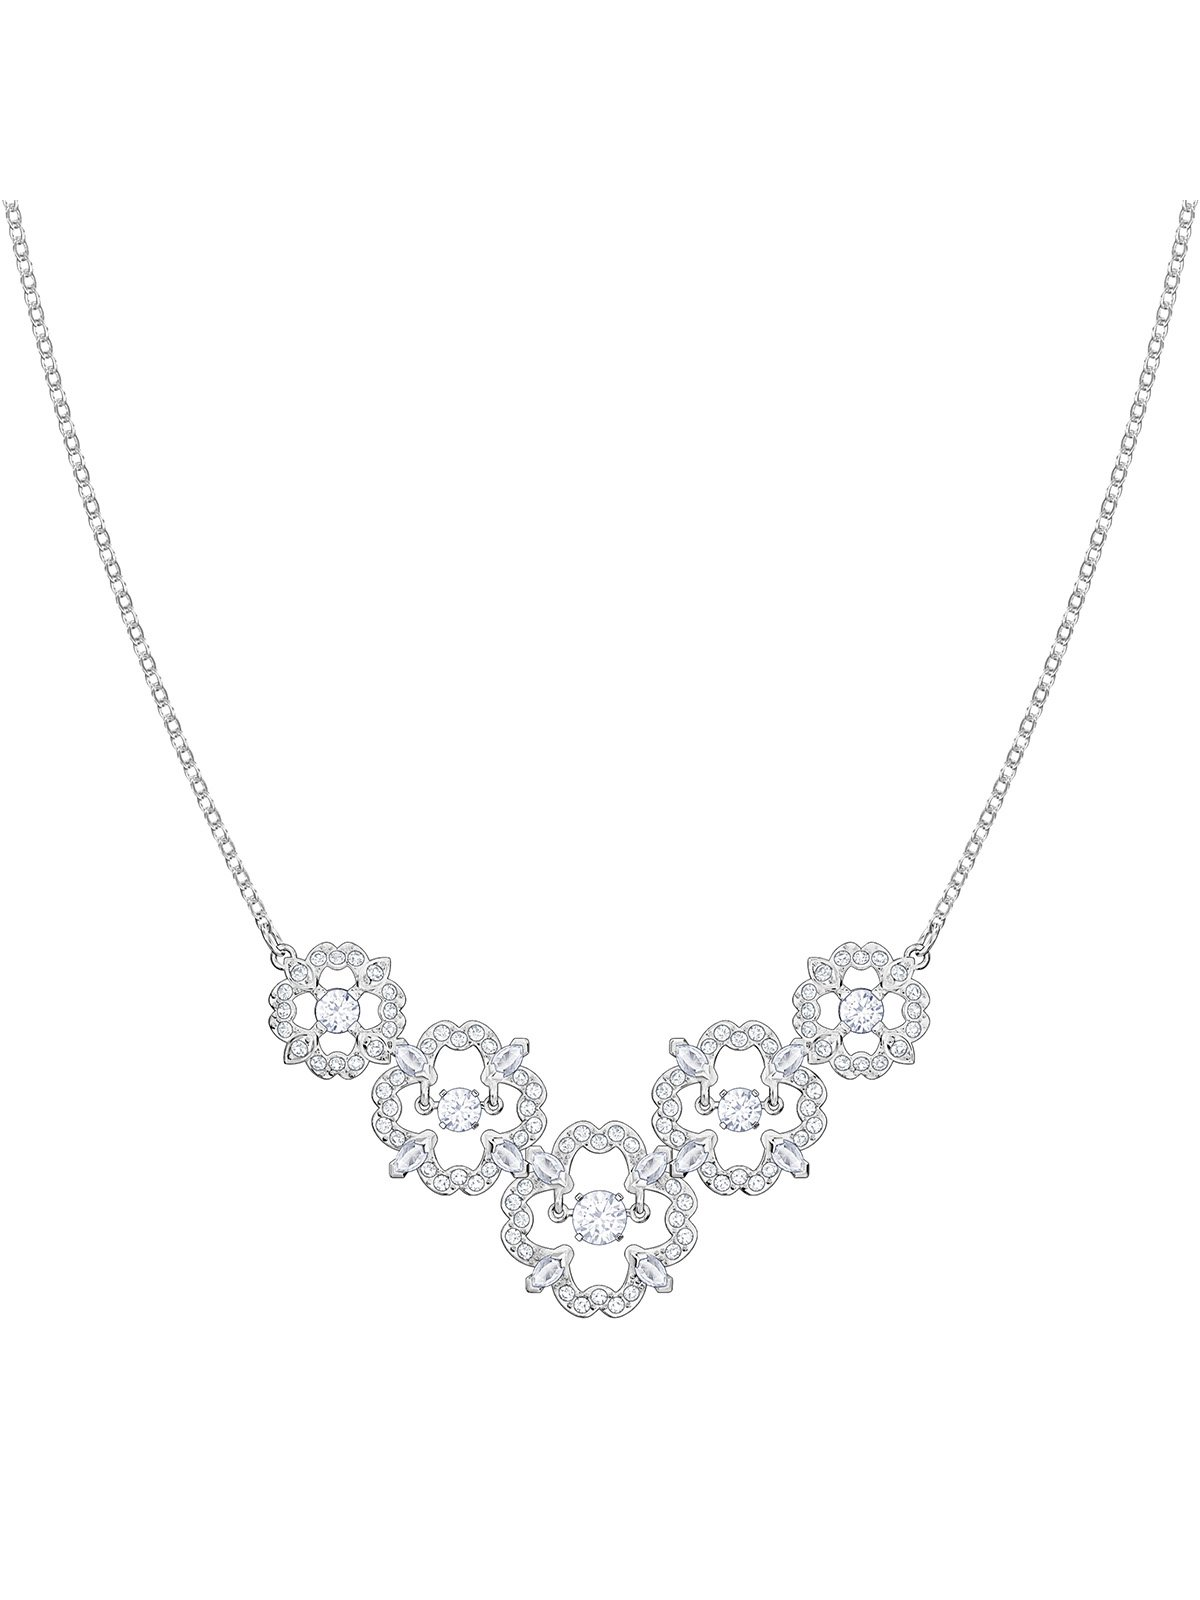 Swarovski Sparkling Dance Flower Necklace 5397240